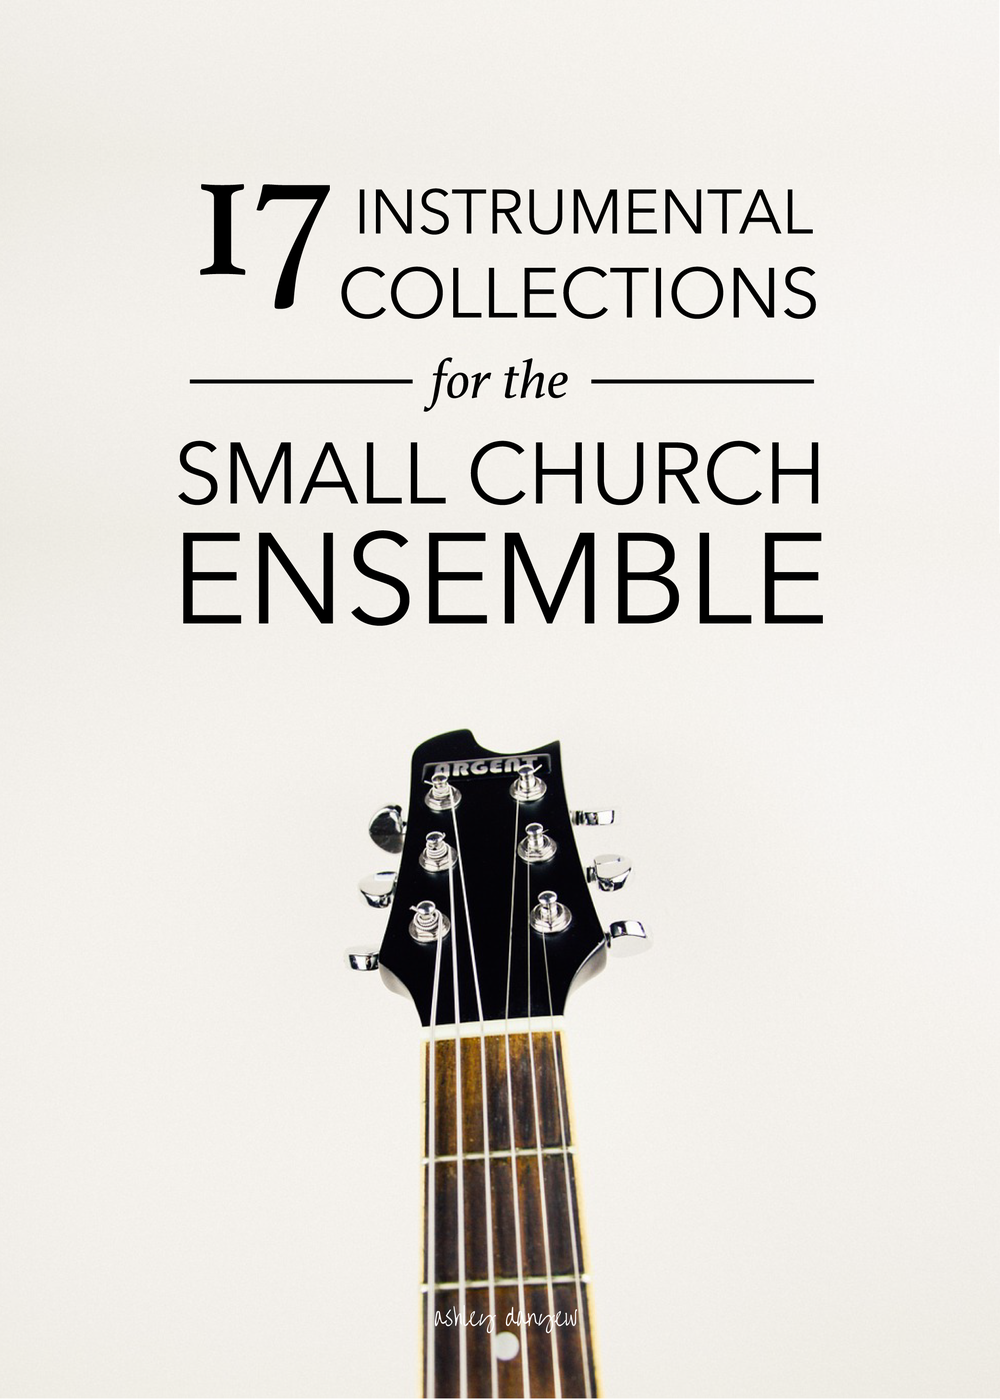 Copy of 17 Instrumental Collections for the Small Church Ensemble